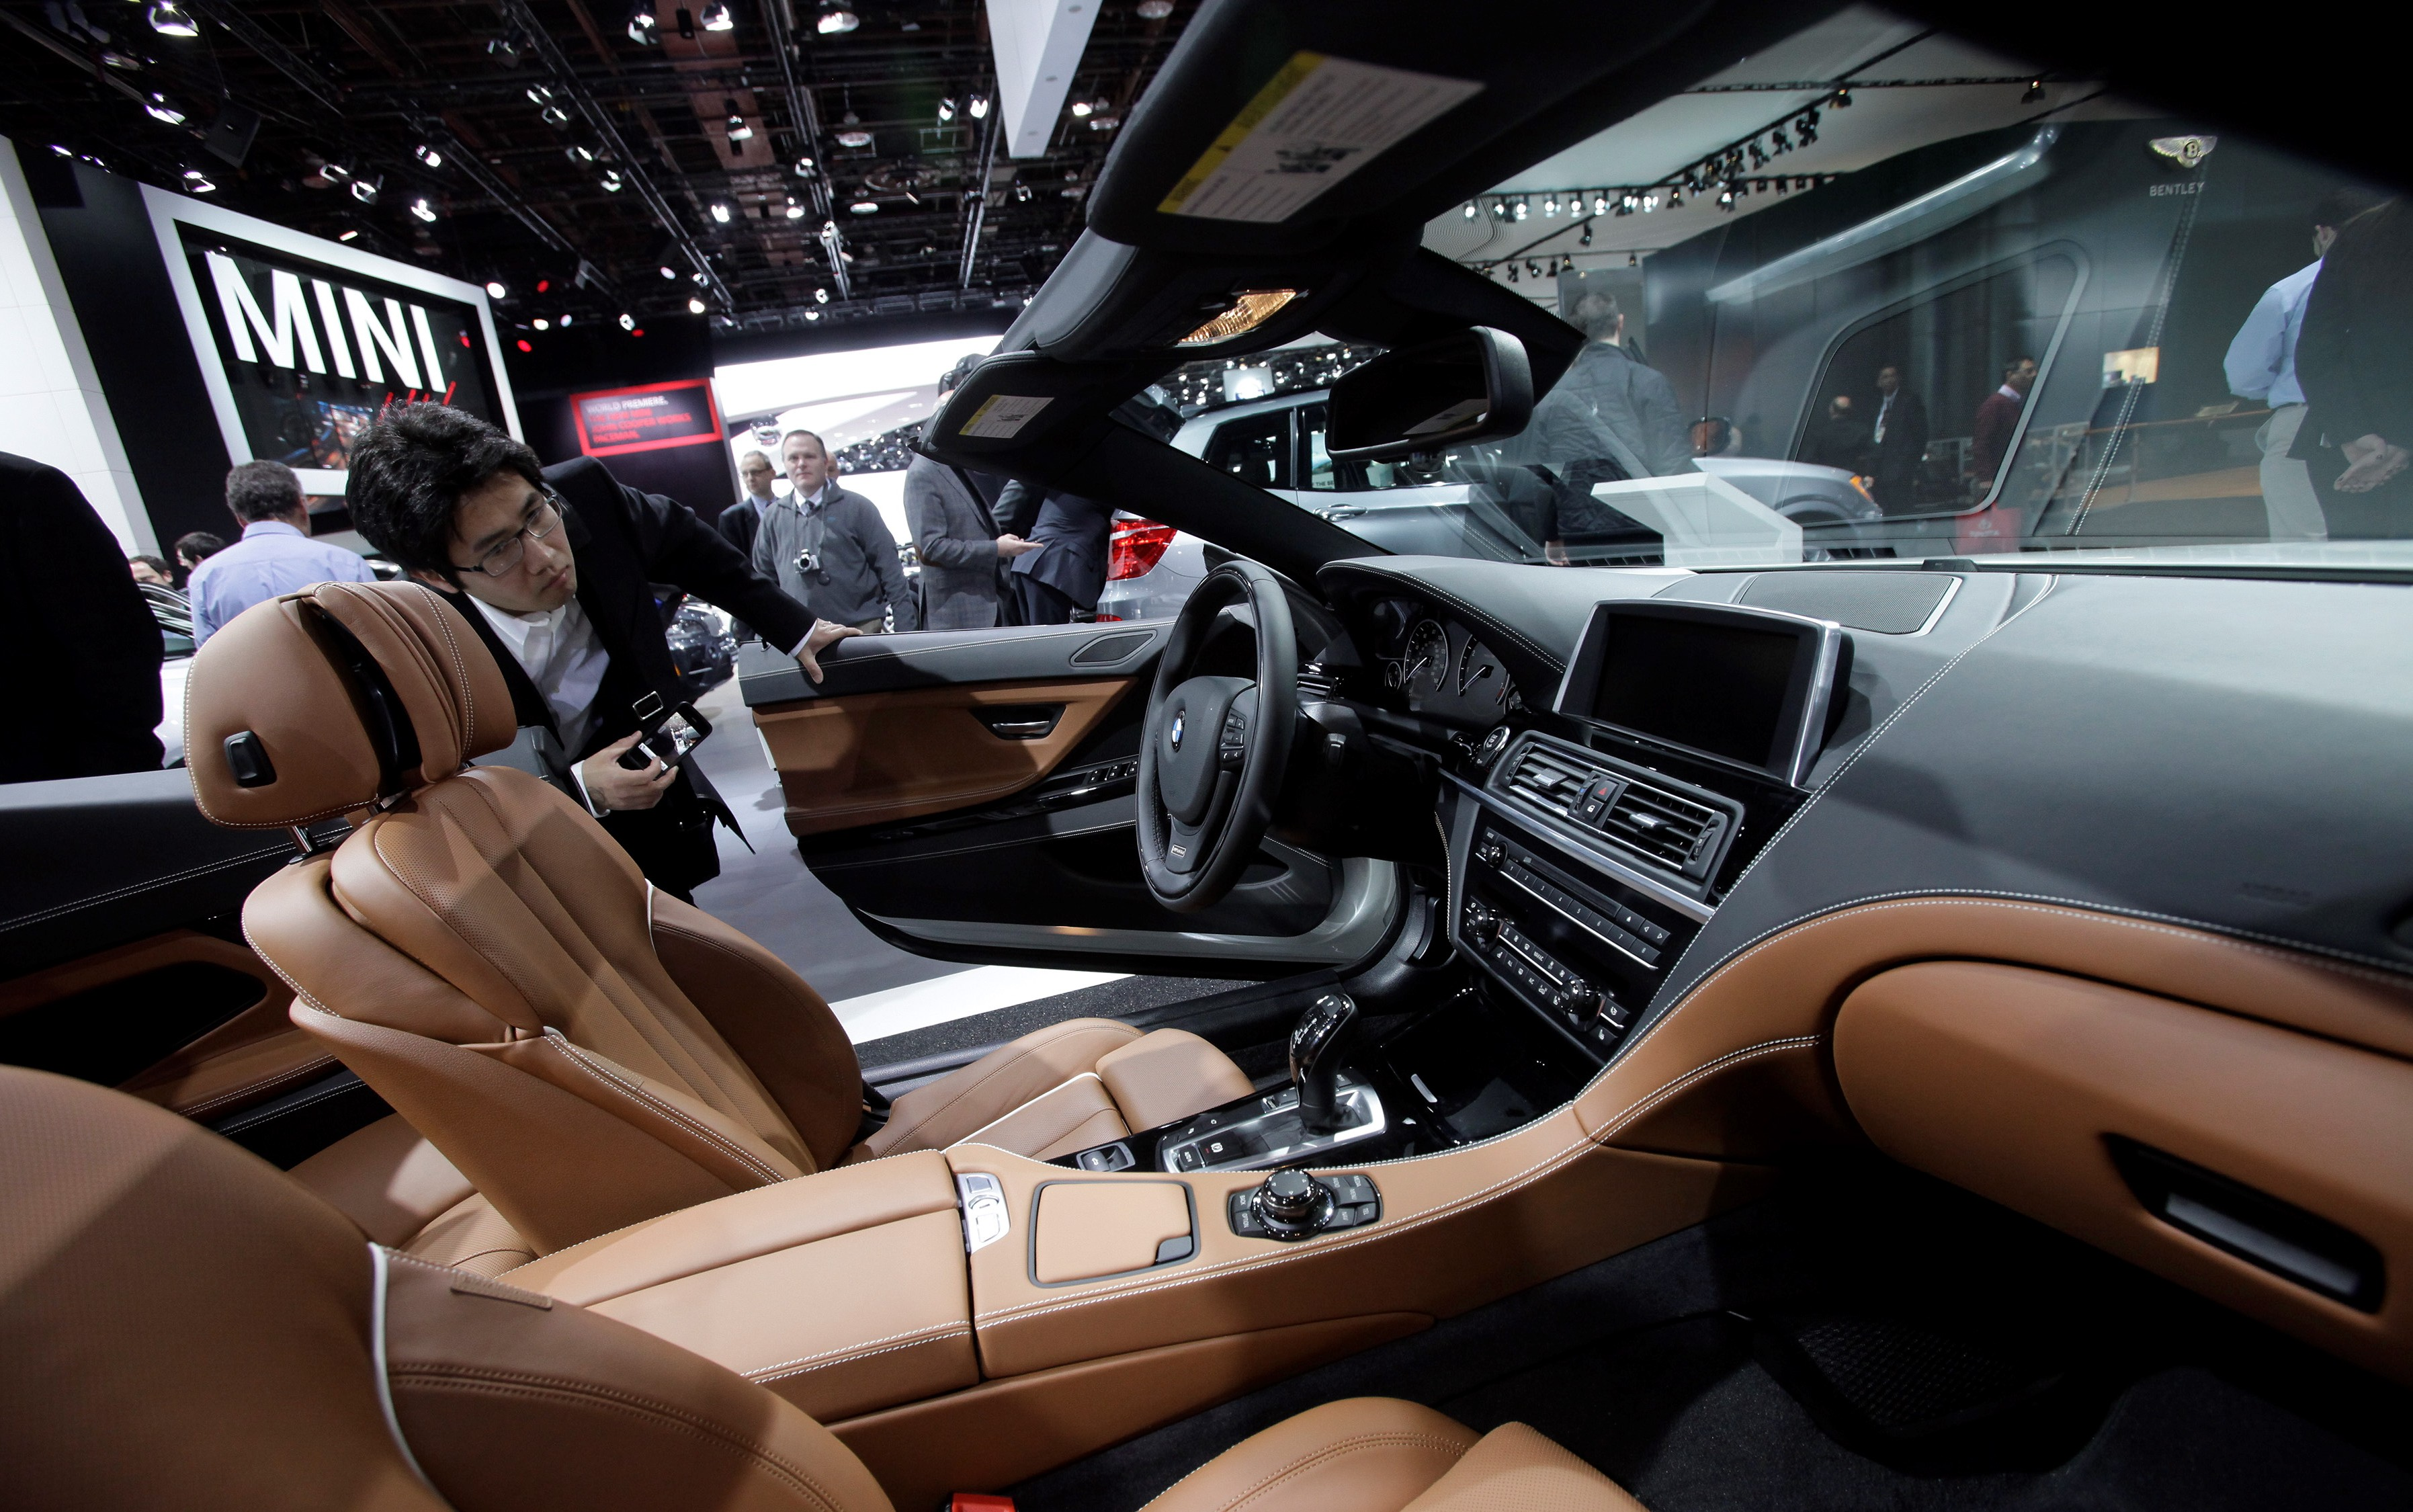 A man looks inside the BMW 650i at the North American International Auto Show in Detroit, Michigan, Thursday, Jan. 17, 2013. +++ AP OUT! Foto: J.D. Pooley/Sipa USA/dapd